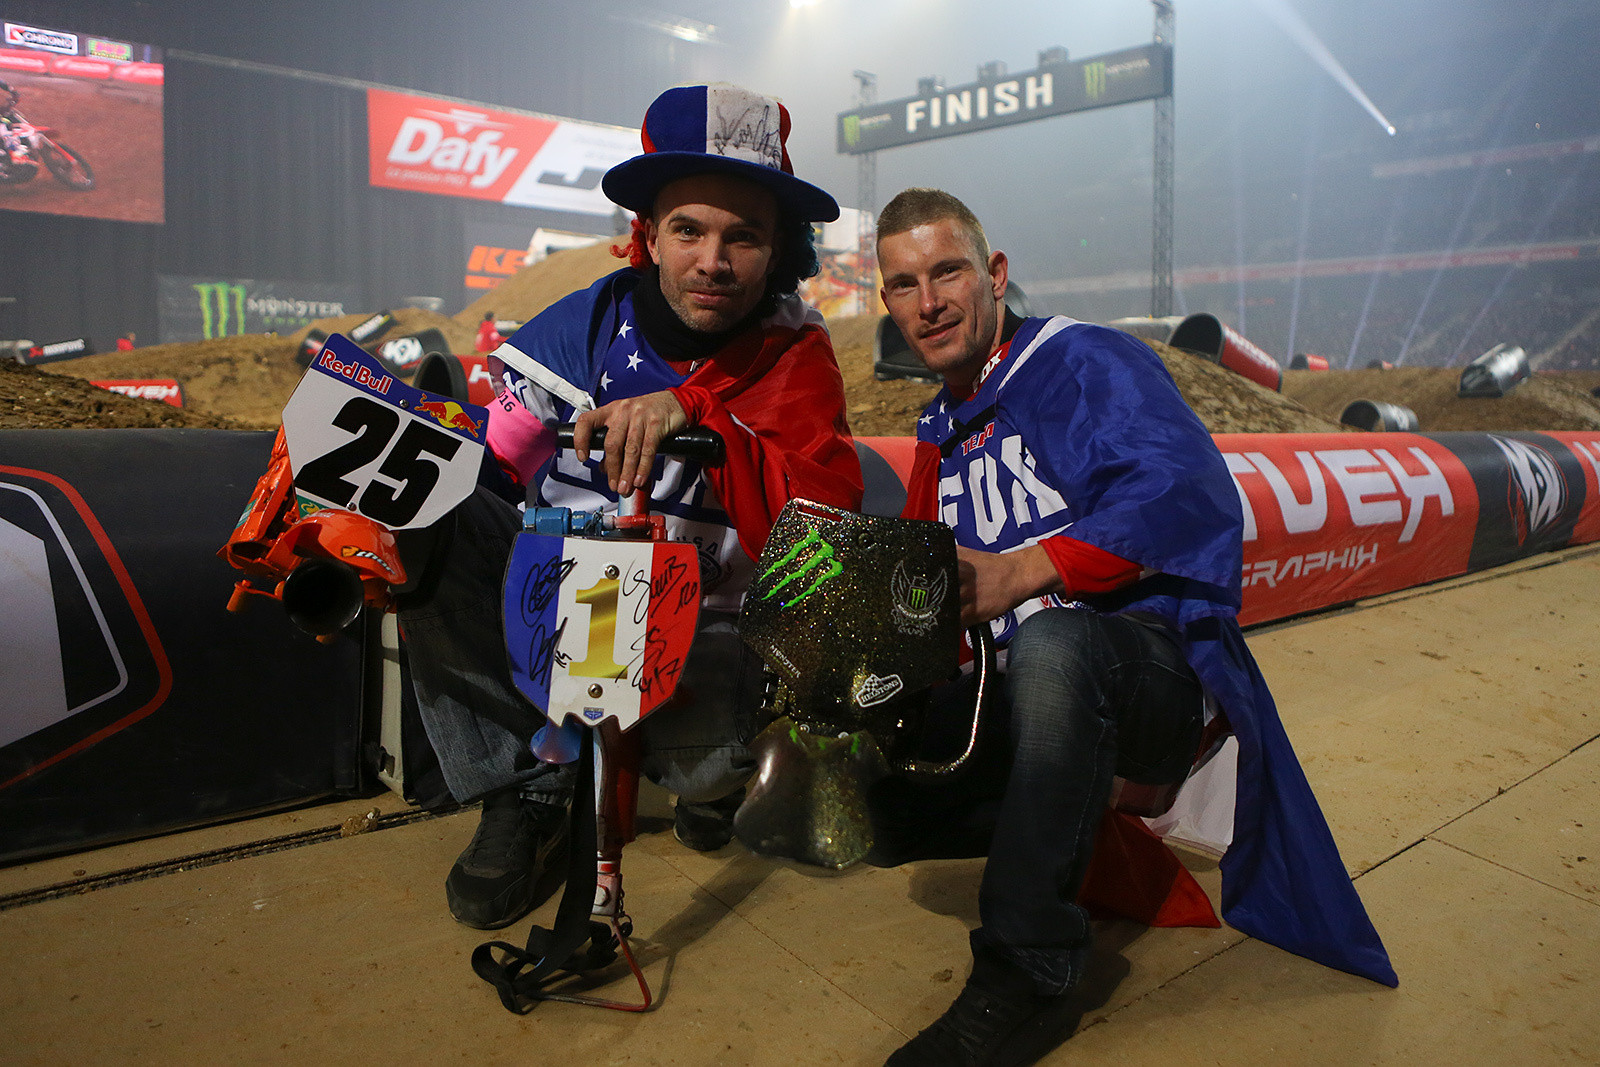 Bring the noise - Photo Gallery: Saturday at the Paris-Lille Supercross - Motocross Pictures - Vital MX